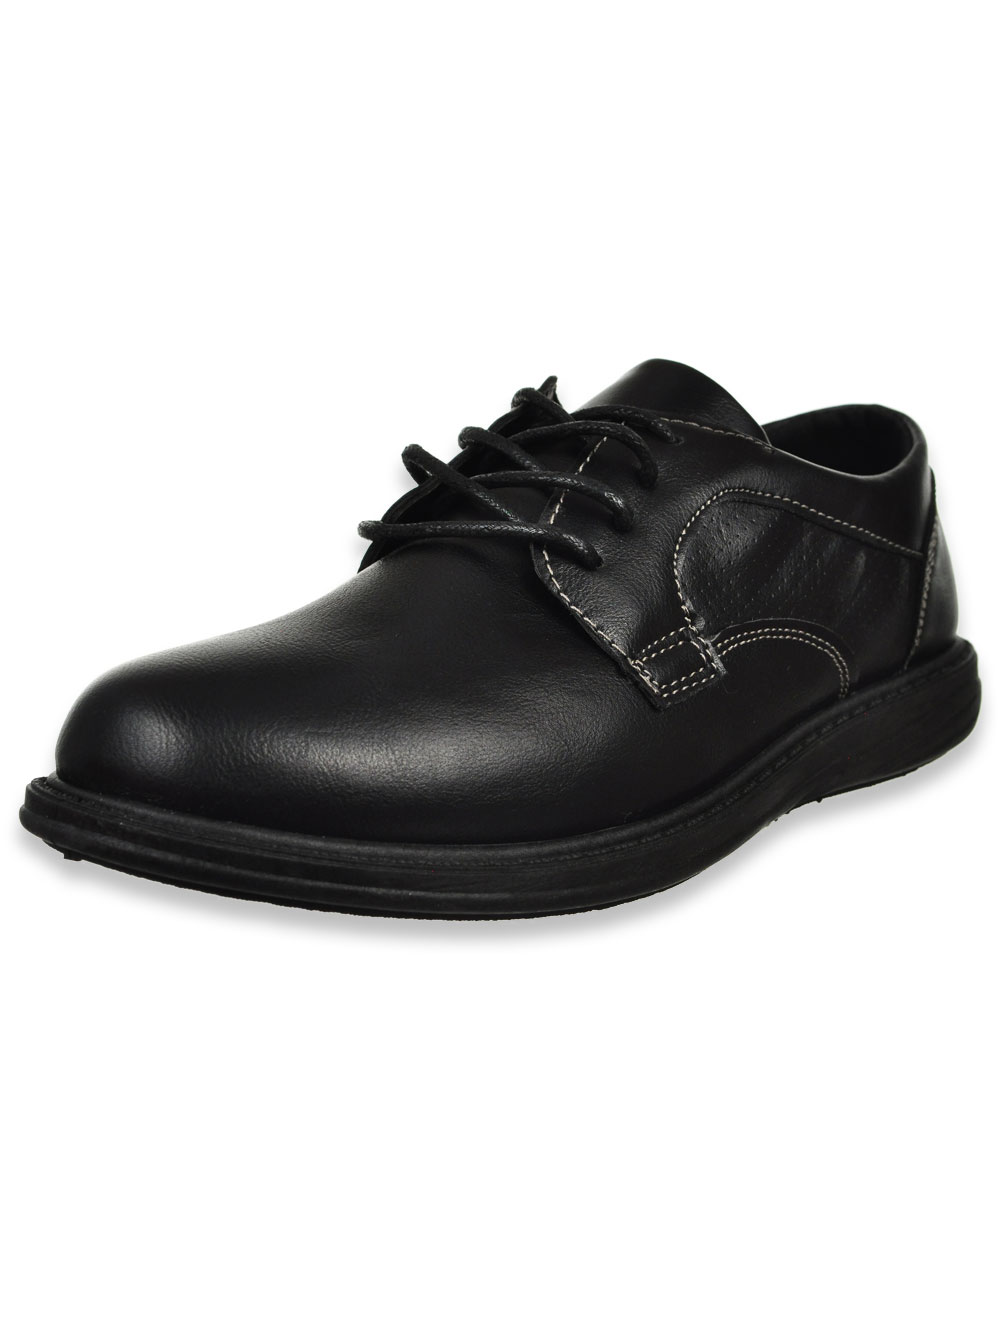 Shoes Lace-Up School